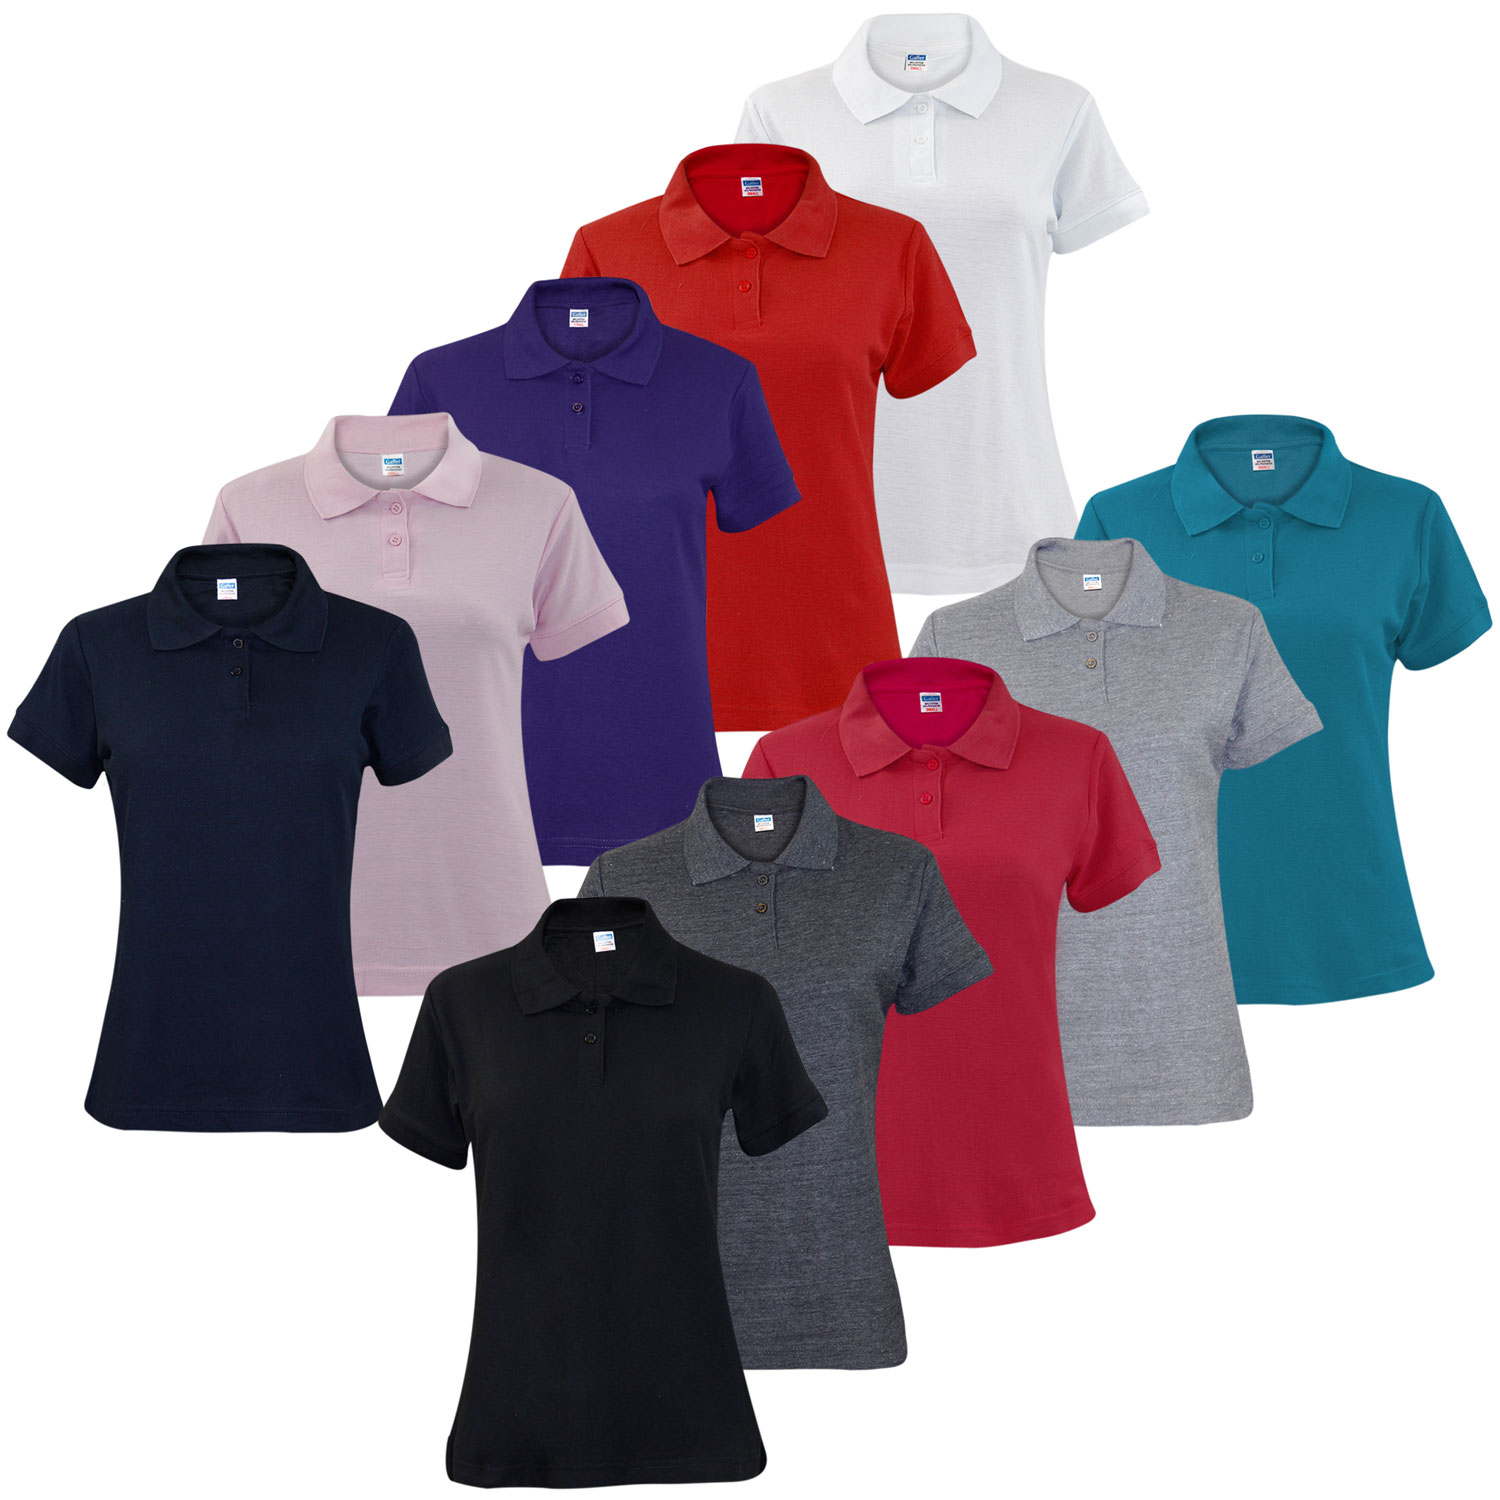 e028081a1e82b New Ladies Pique Polo Shirt PK Tee Collar Neck plus Sizes Women T- Shirt  Top This is Gaffer Brand Poly cotton Short sleeve very soft and medium  weighted ...